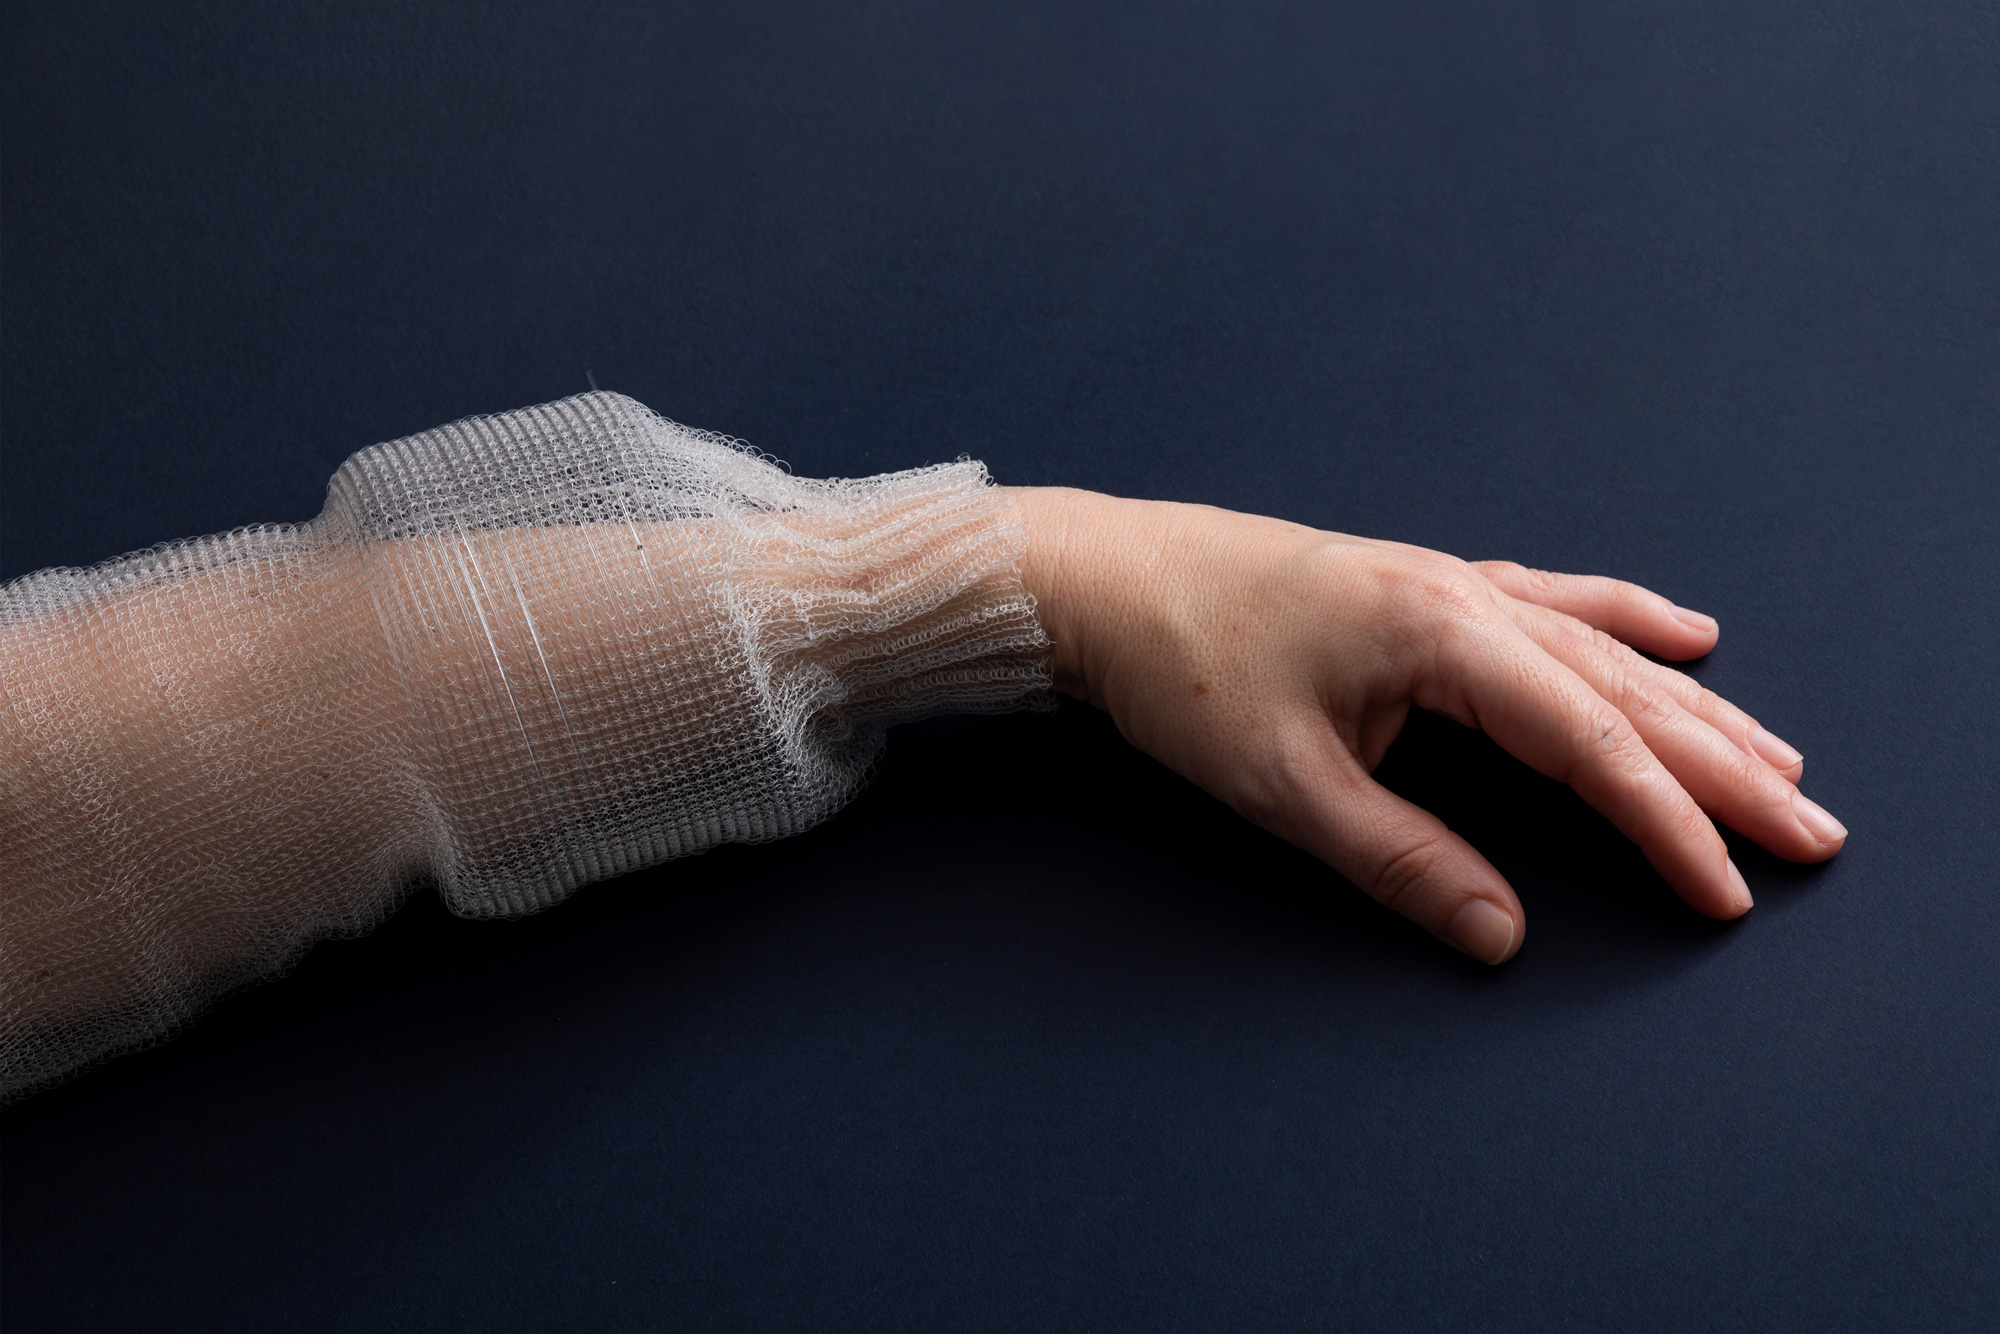 MIT's digital fabric, demonstrated as a sleeve